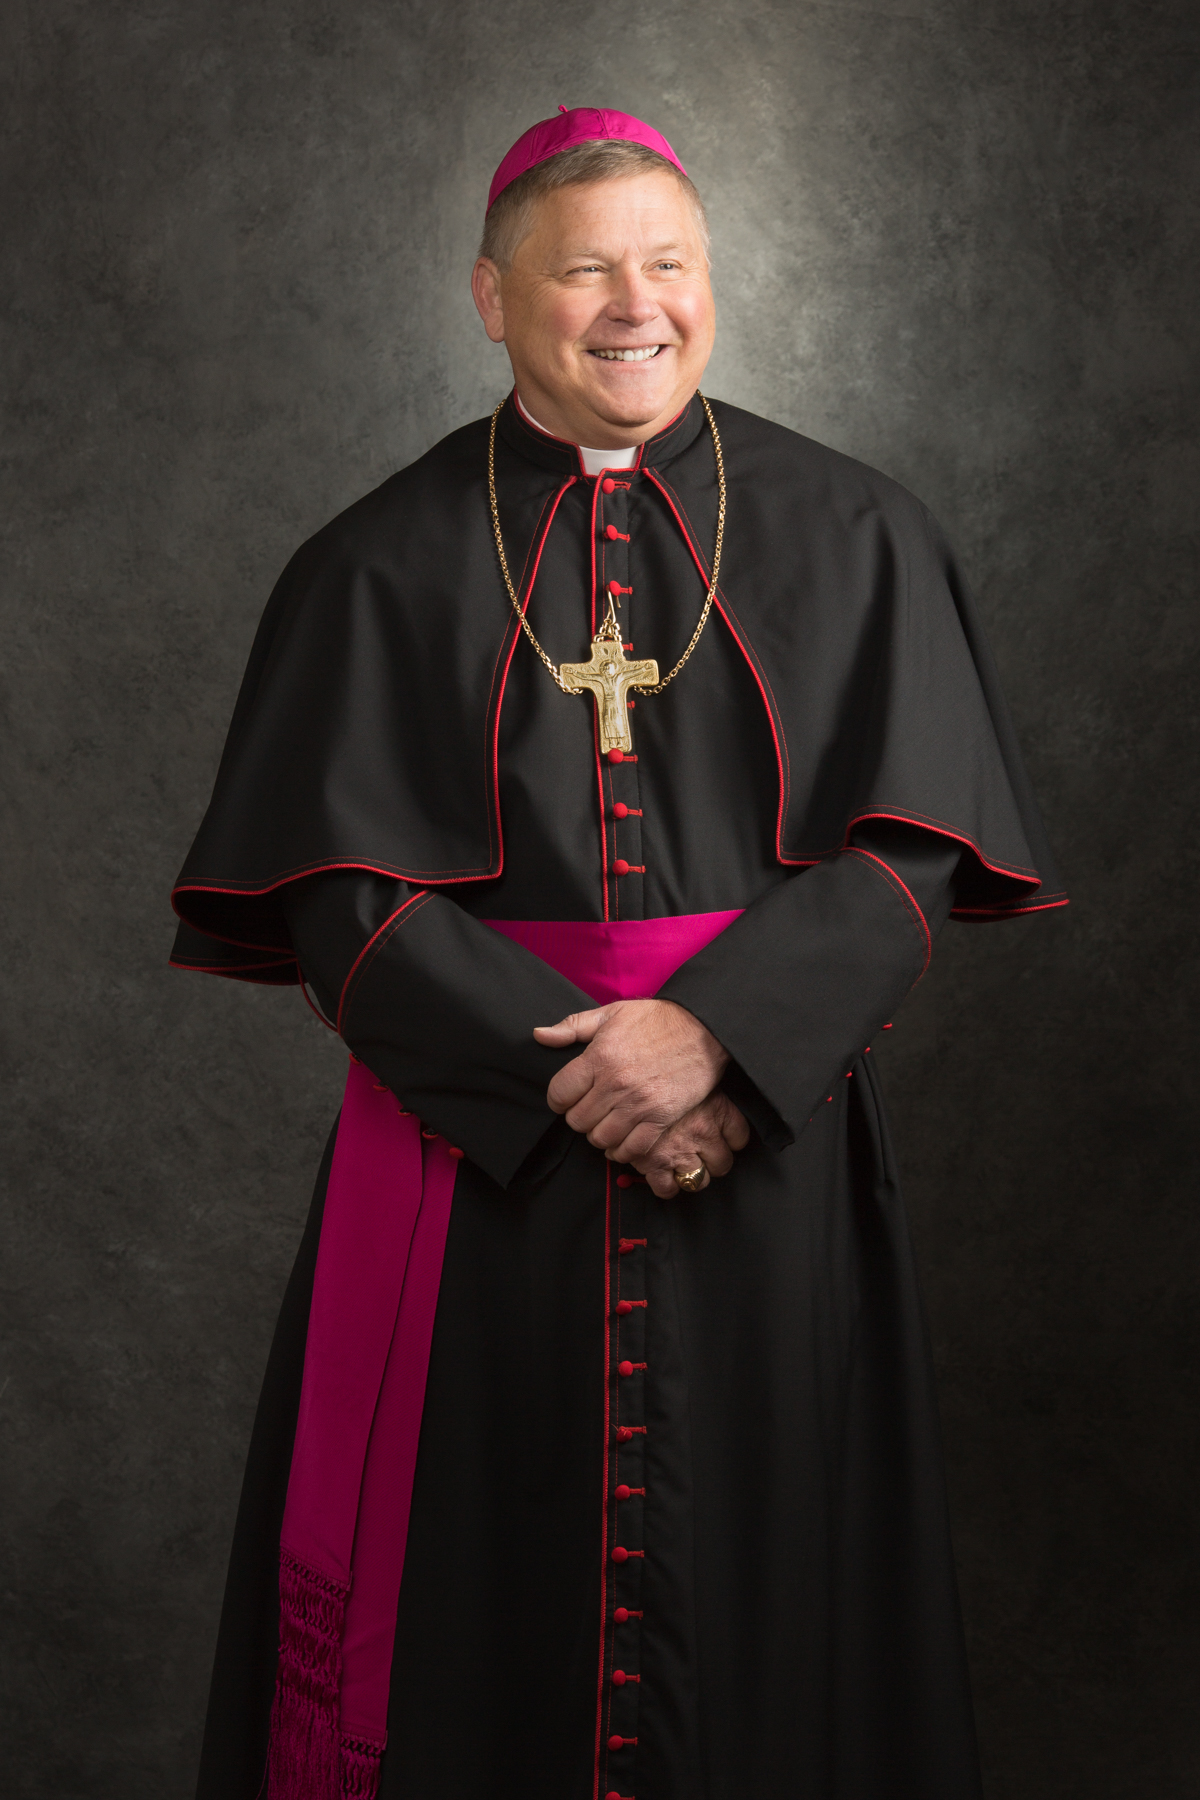 The Rev. Richard F. Stika, Bishop of Knoxville, official portrait displayed in the Cathedral of the Sacred Heart of Jesus